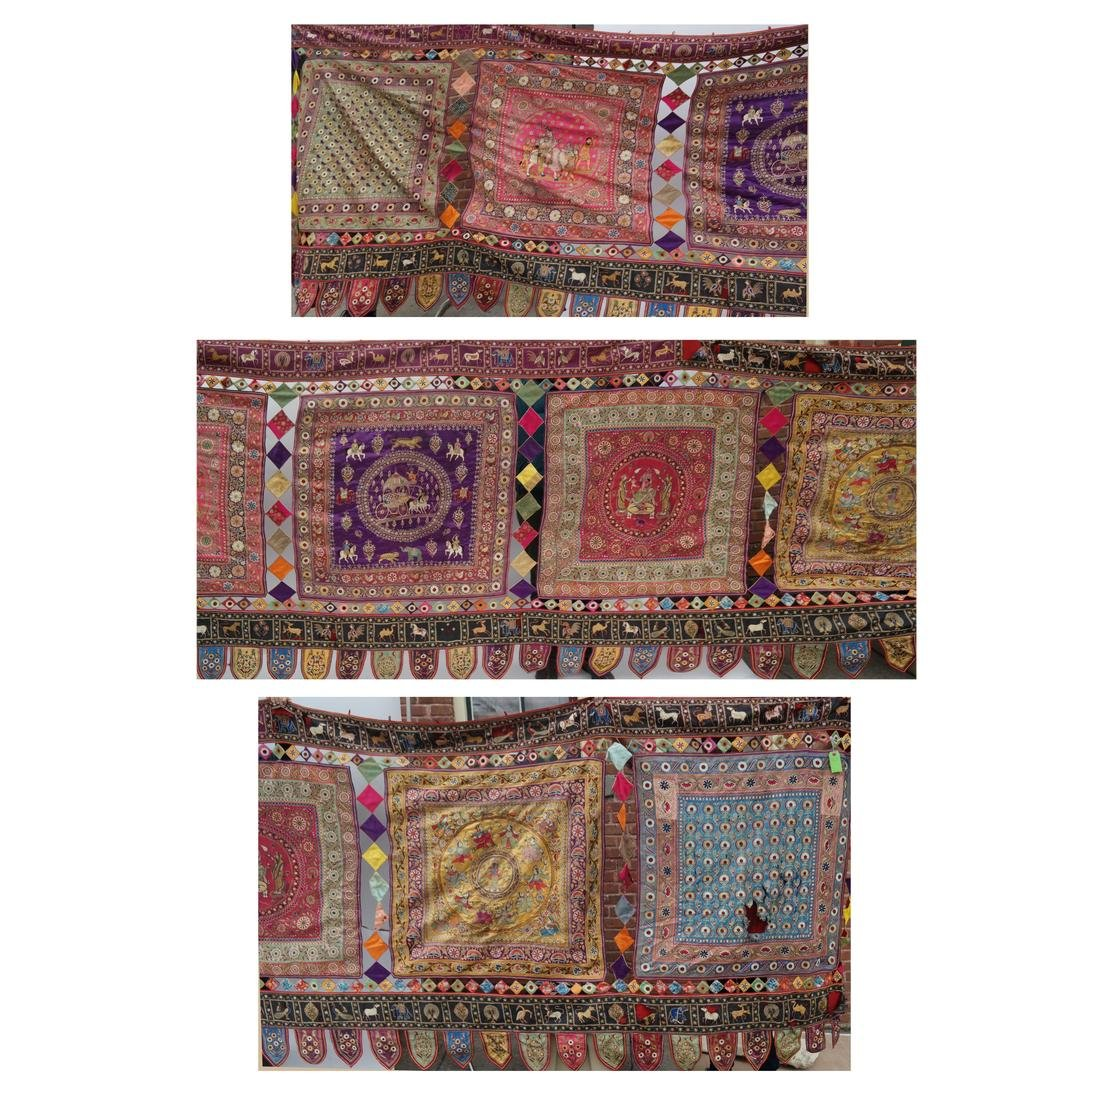 Remarkable Antique Indian Silk Embroidered Tent Panel